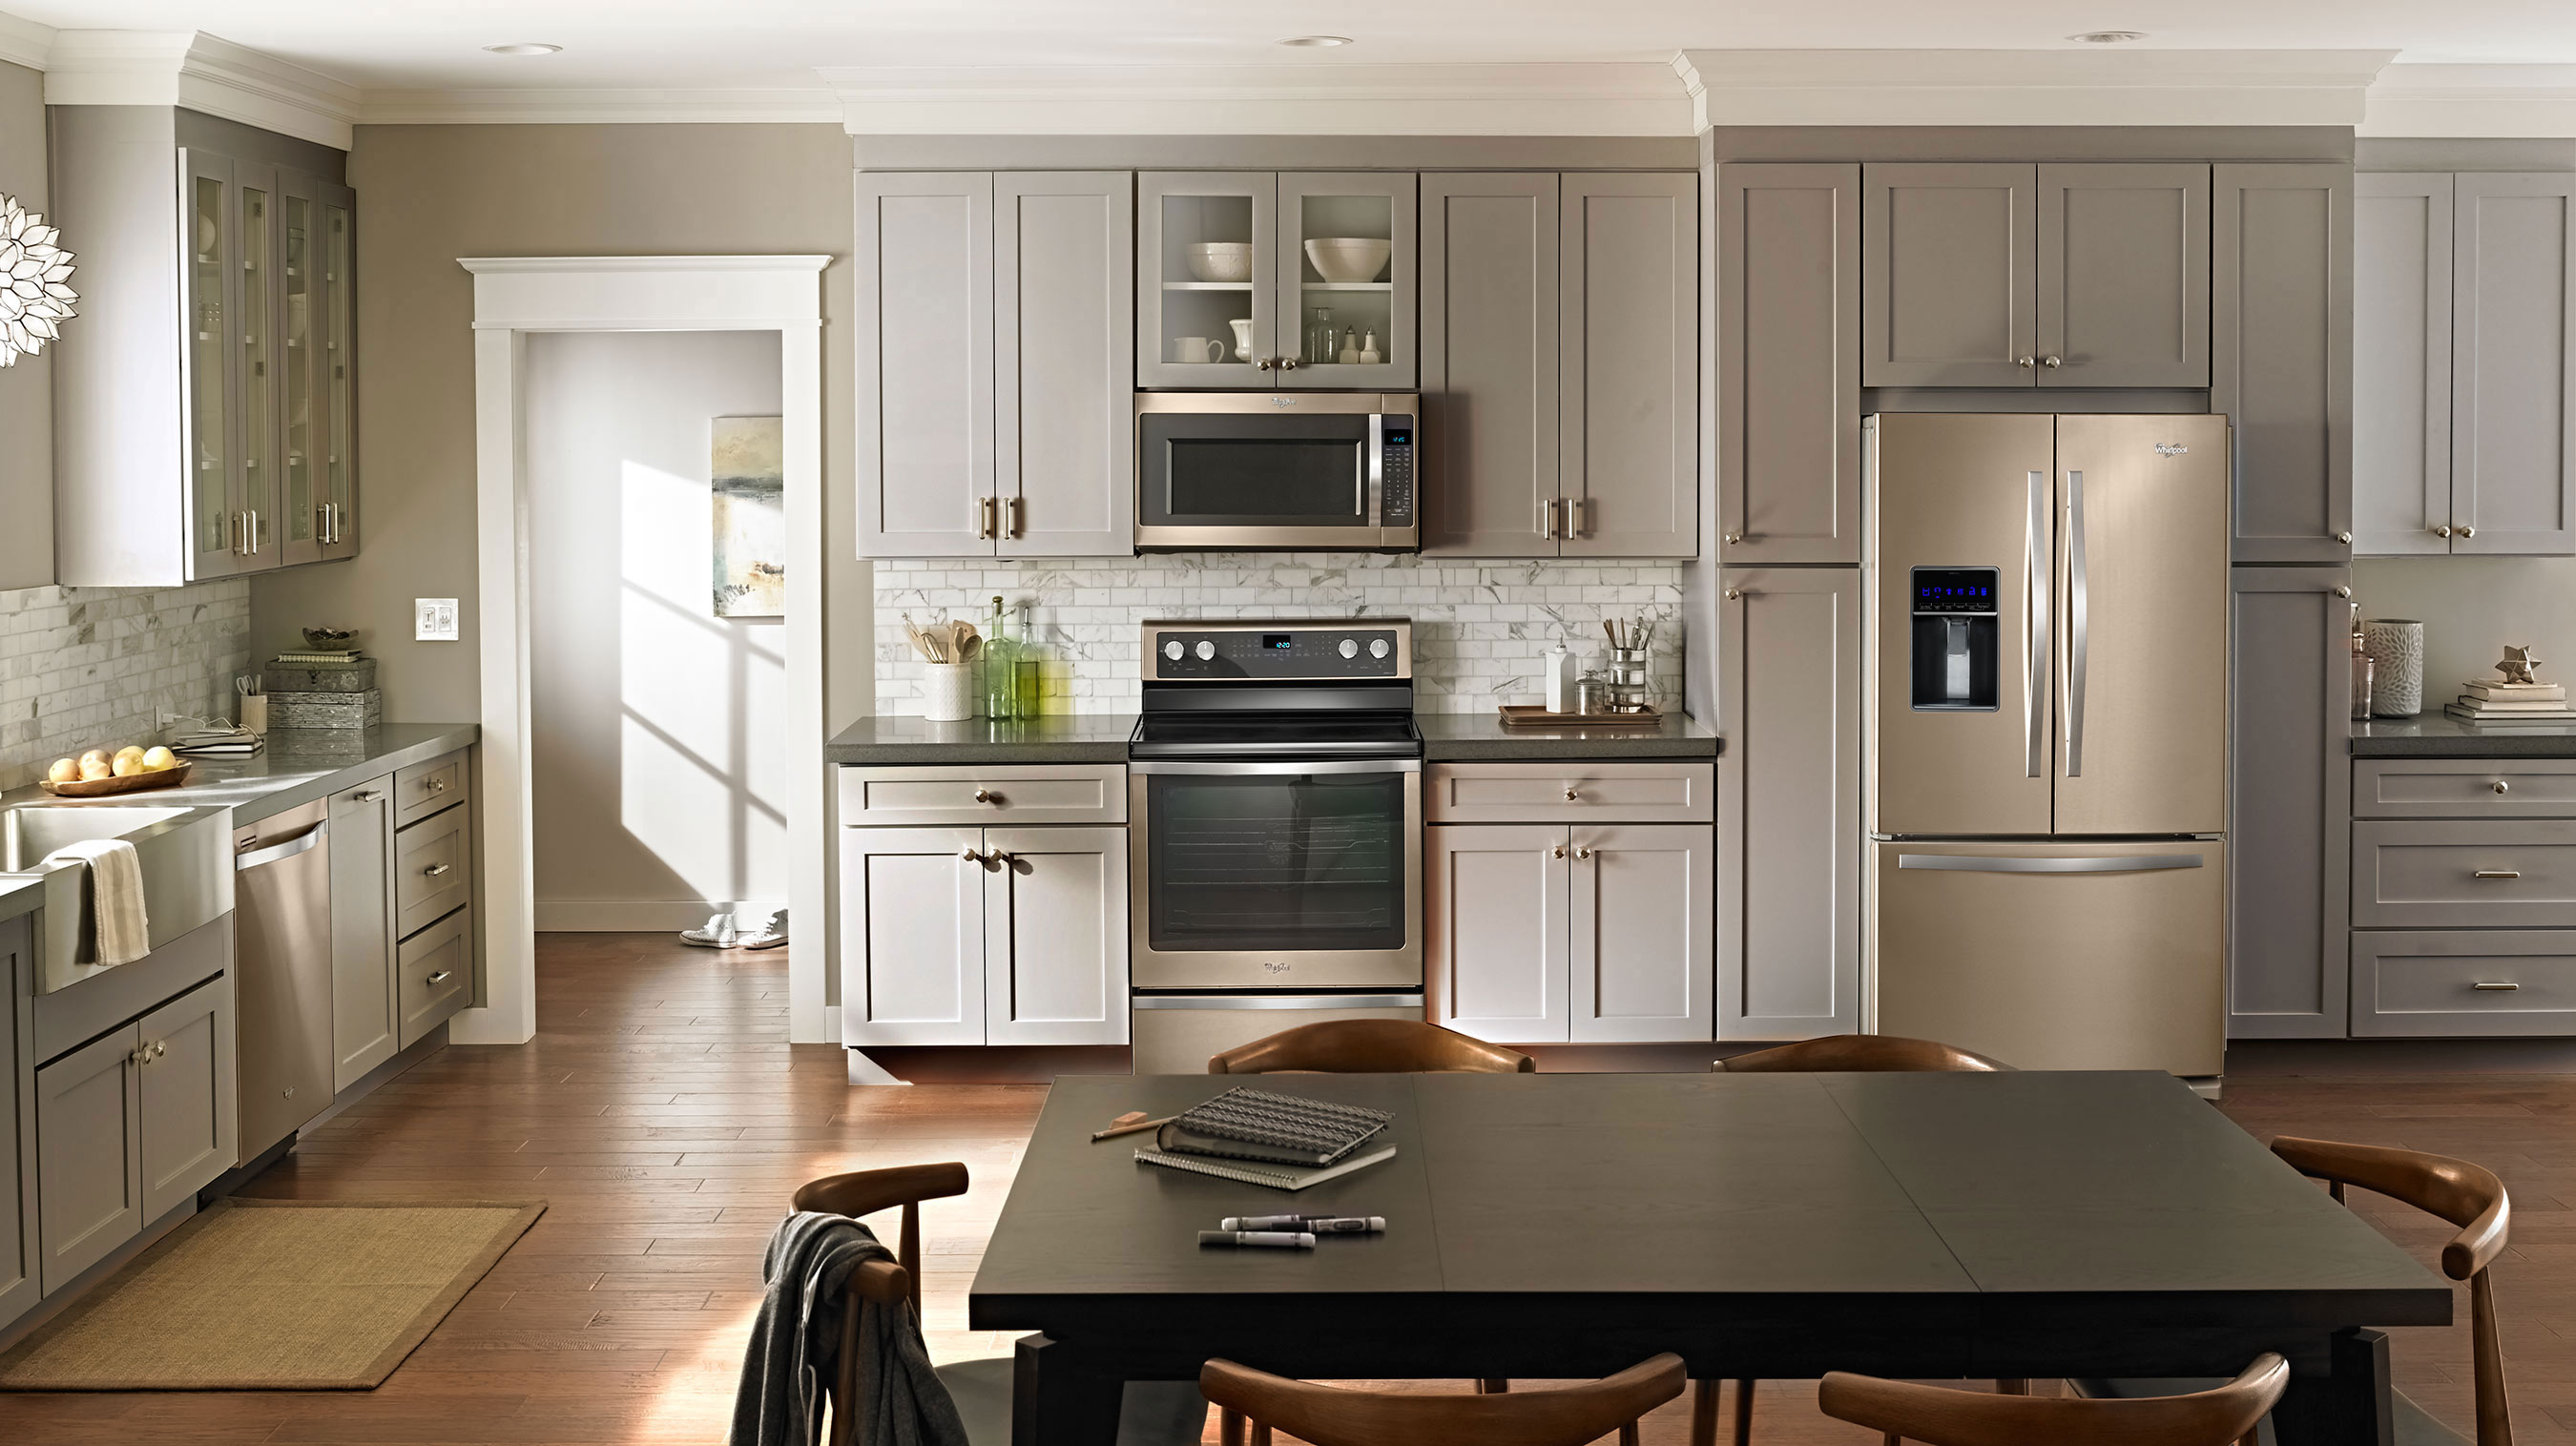 Must-Have Amenities for the Home, Featuring Whirlpool® Brand Sunset Bronze Kitchen Suite